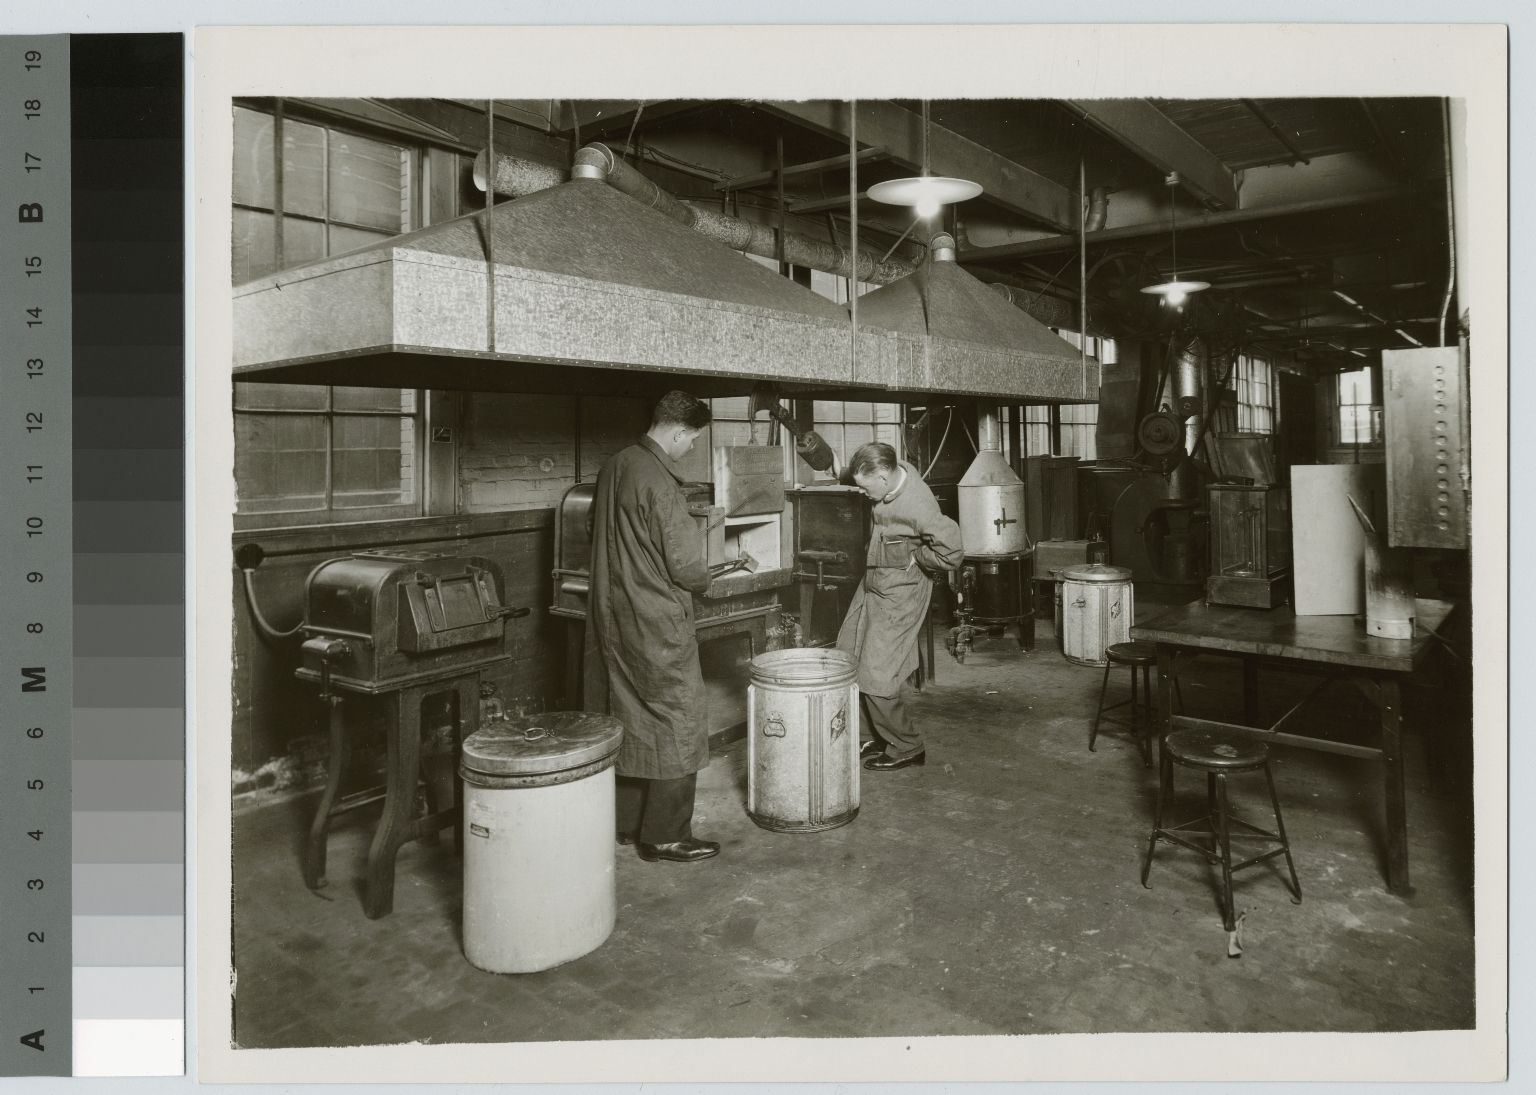 Heat treating process, School of Industrial Arts, Rochester Athenaeum and Mechanics Institute [1920-1930]